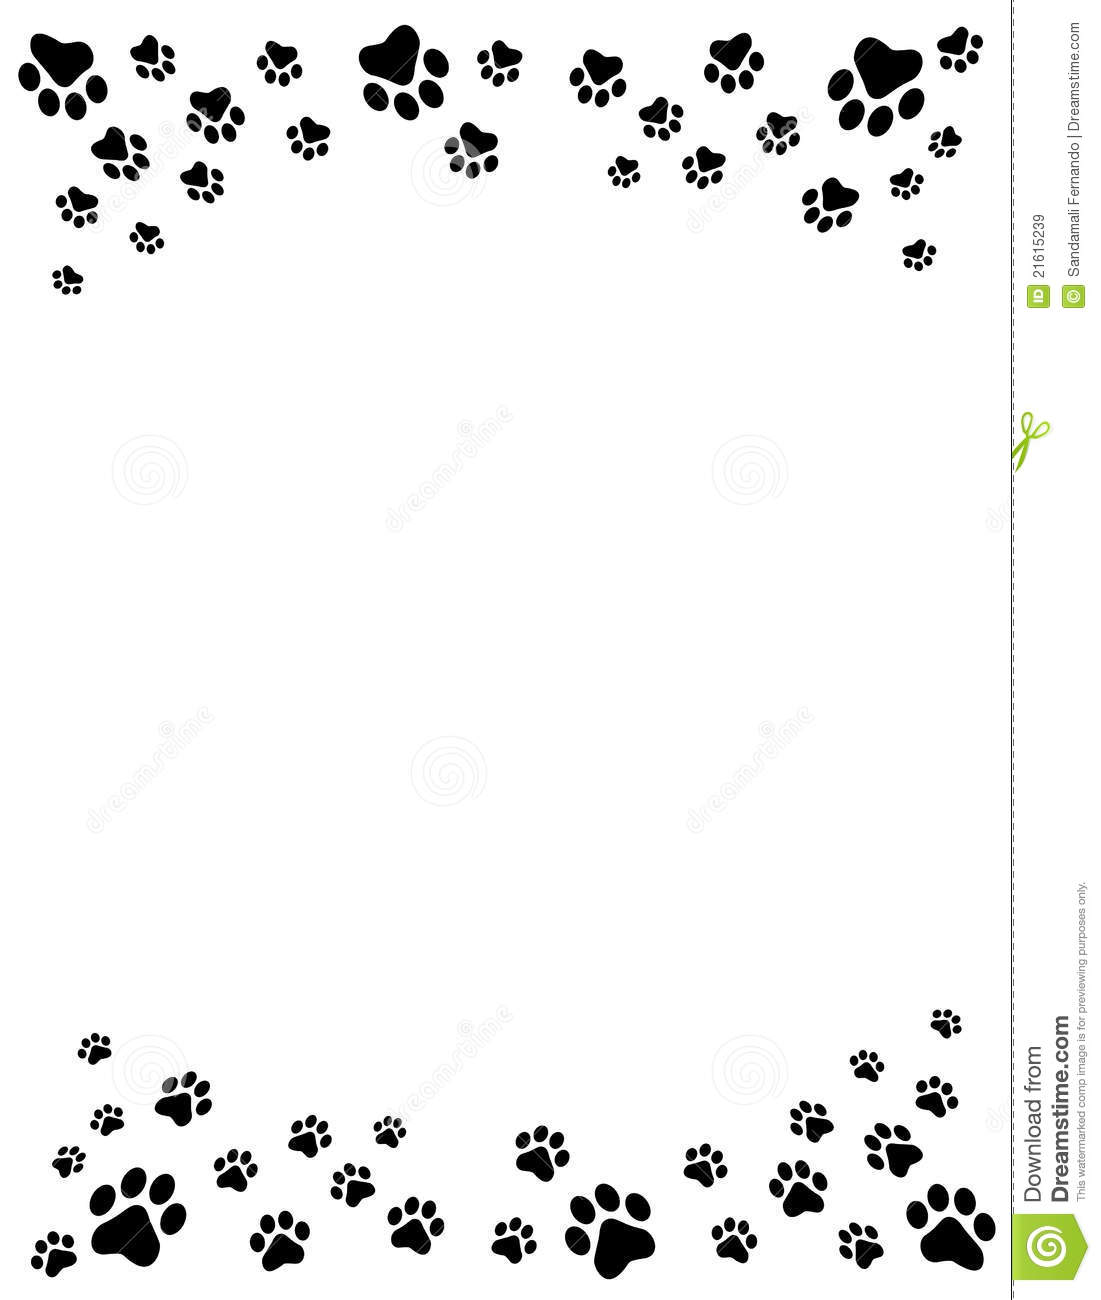 Paw Print Trail Clip Art: White Bear Paw Print, Dog Paw Print, Tribal ...